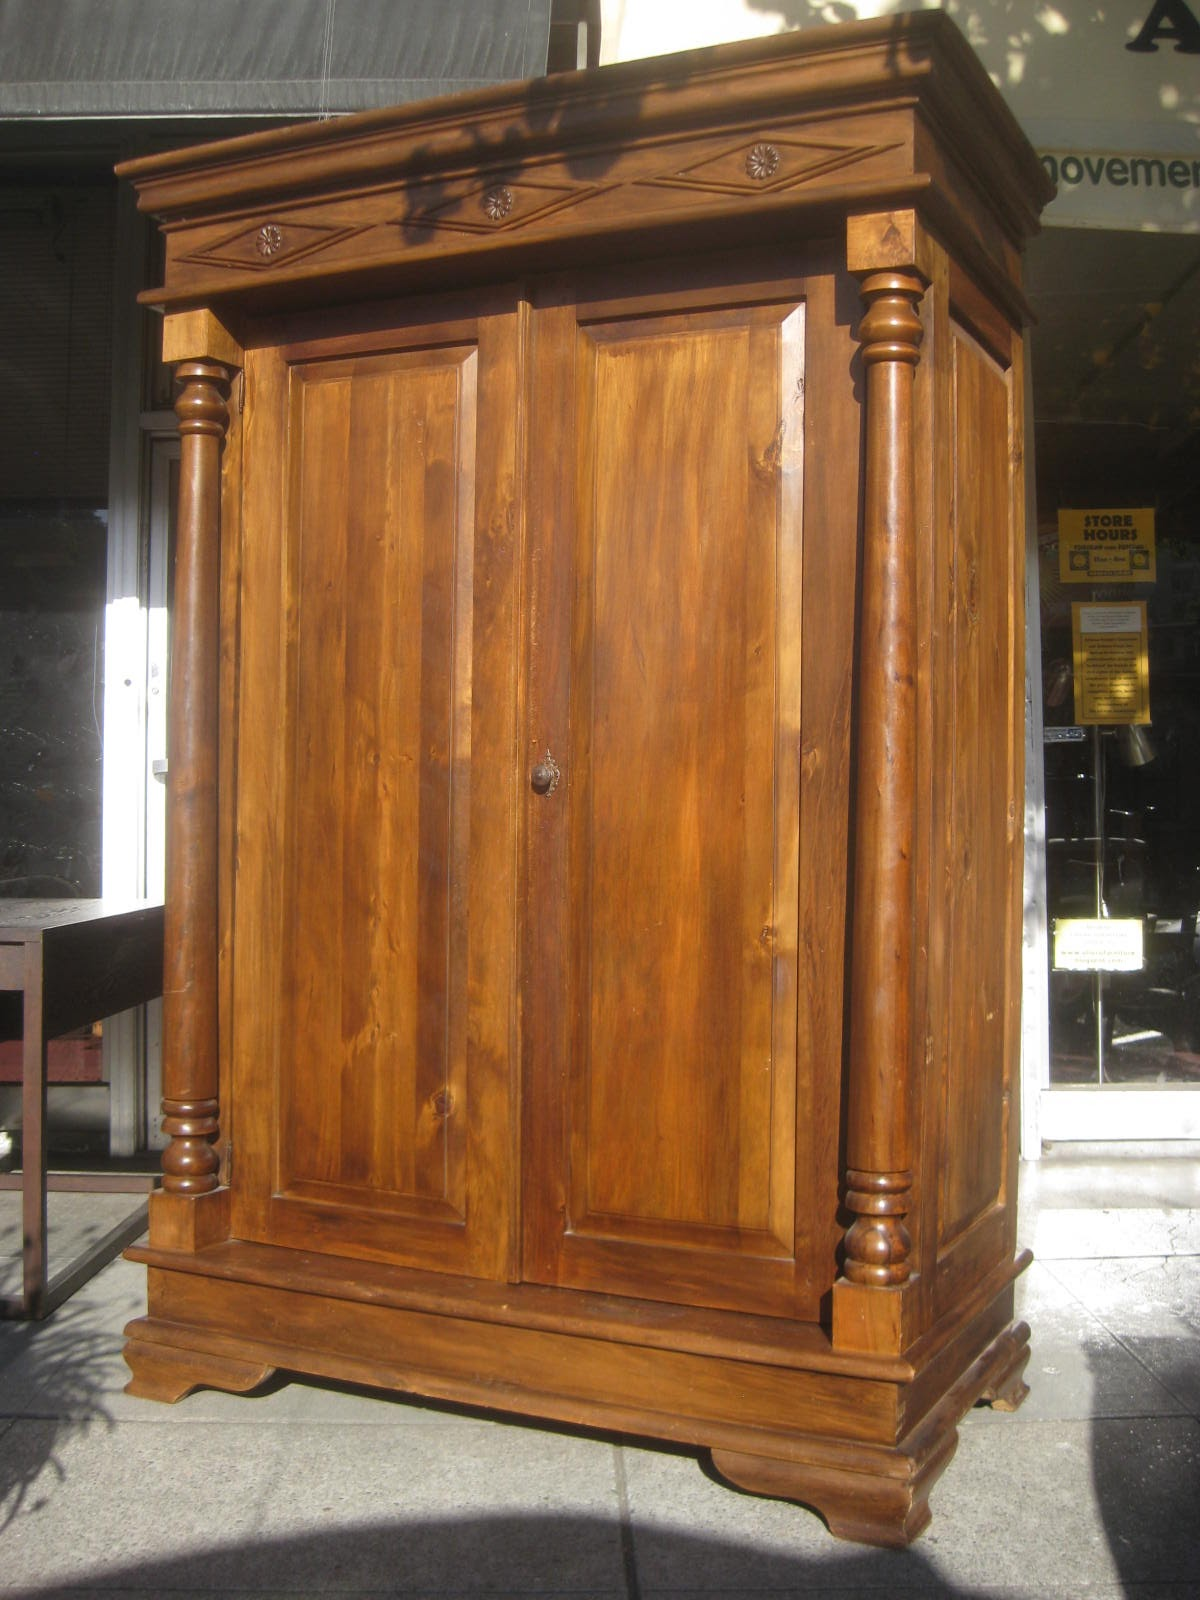 uhuru furniture collectibles sold large armoire 200. Black Bedroom Furniture Sets. Home Design Ideas